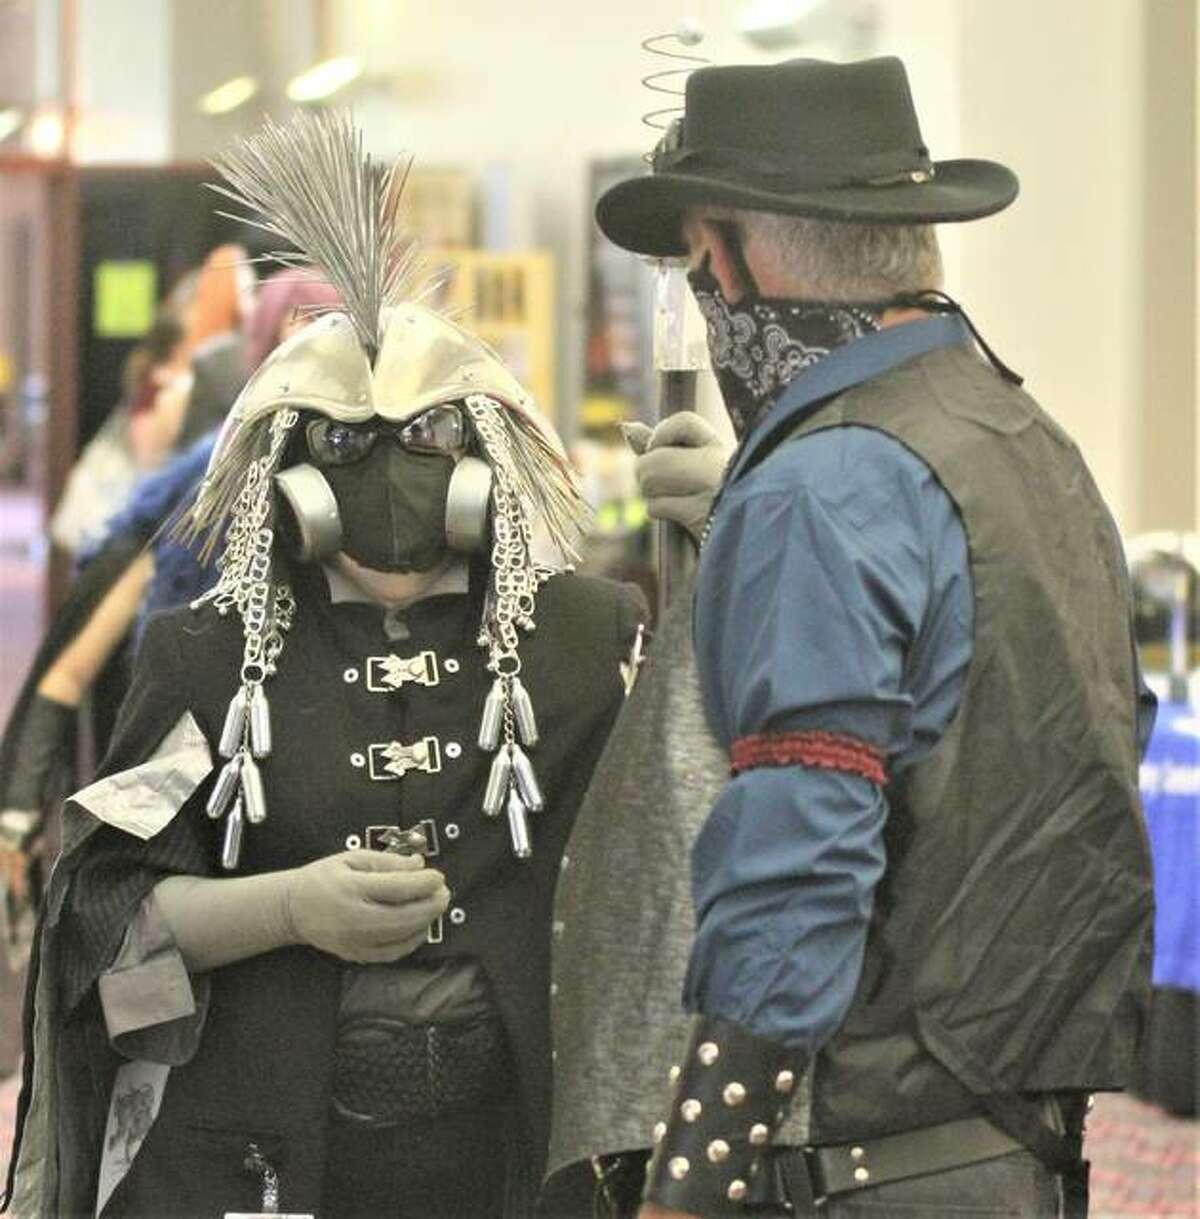 """Snail Scott, left, a St. Louis-based sculptor wearing a costume she describes as """"Post-Apocalyptic Plague Shaman,"""" talks with another participant at Archon, the region's premier Sci-Fi/Fantasy convention last weekend."""